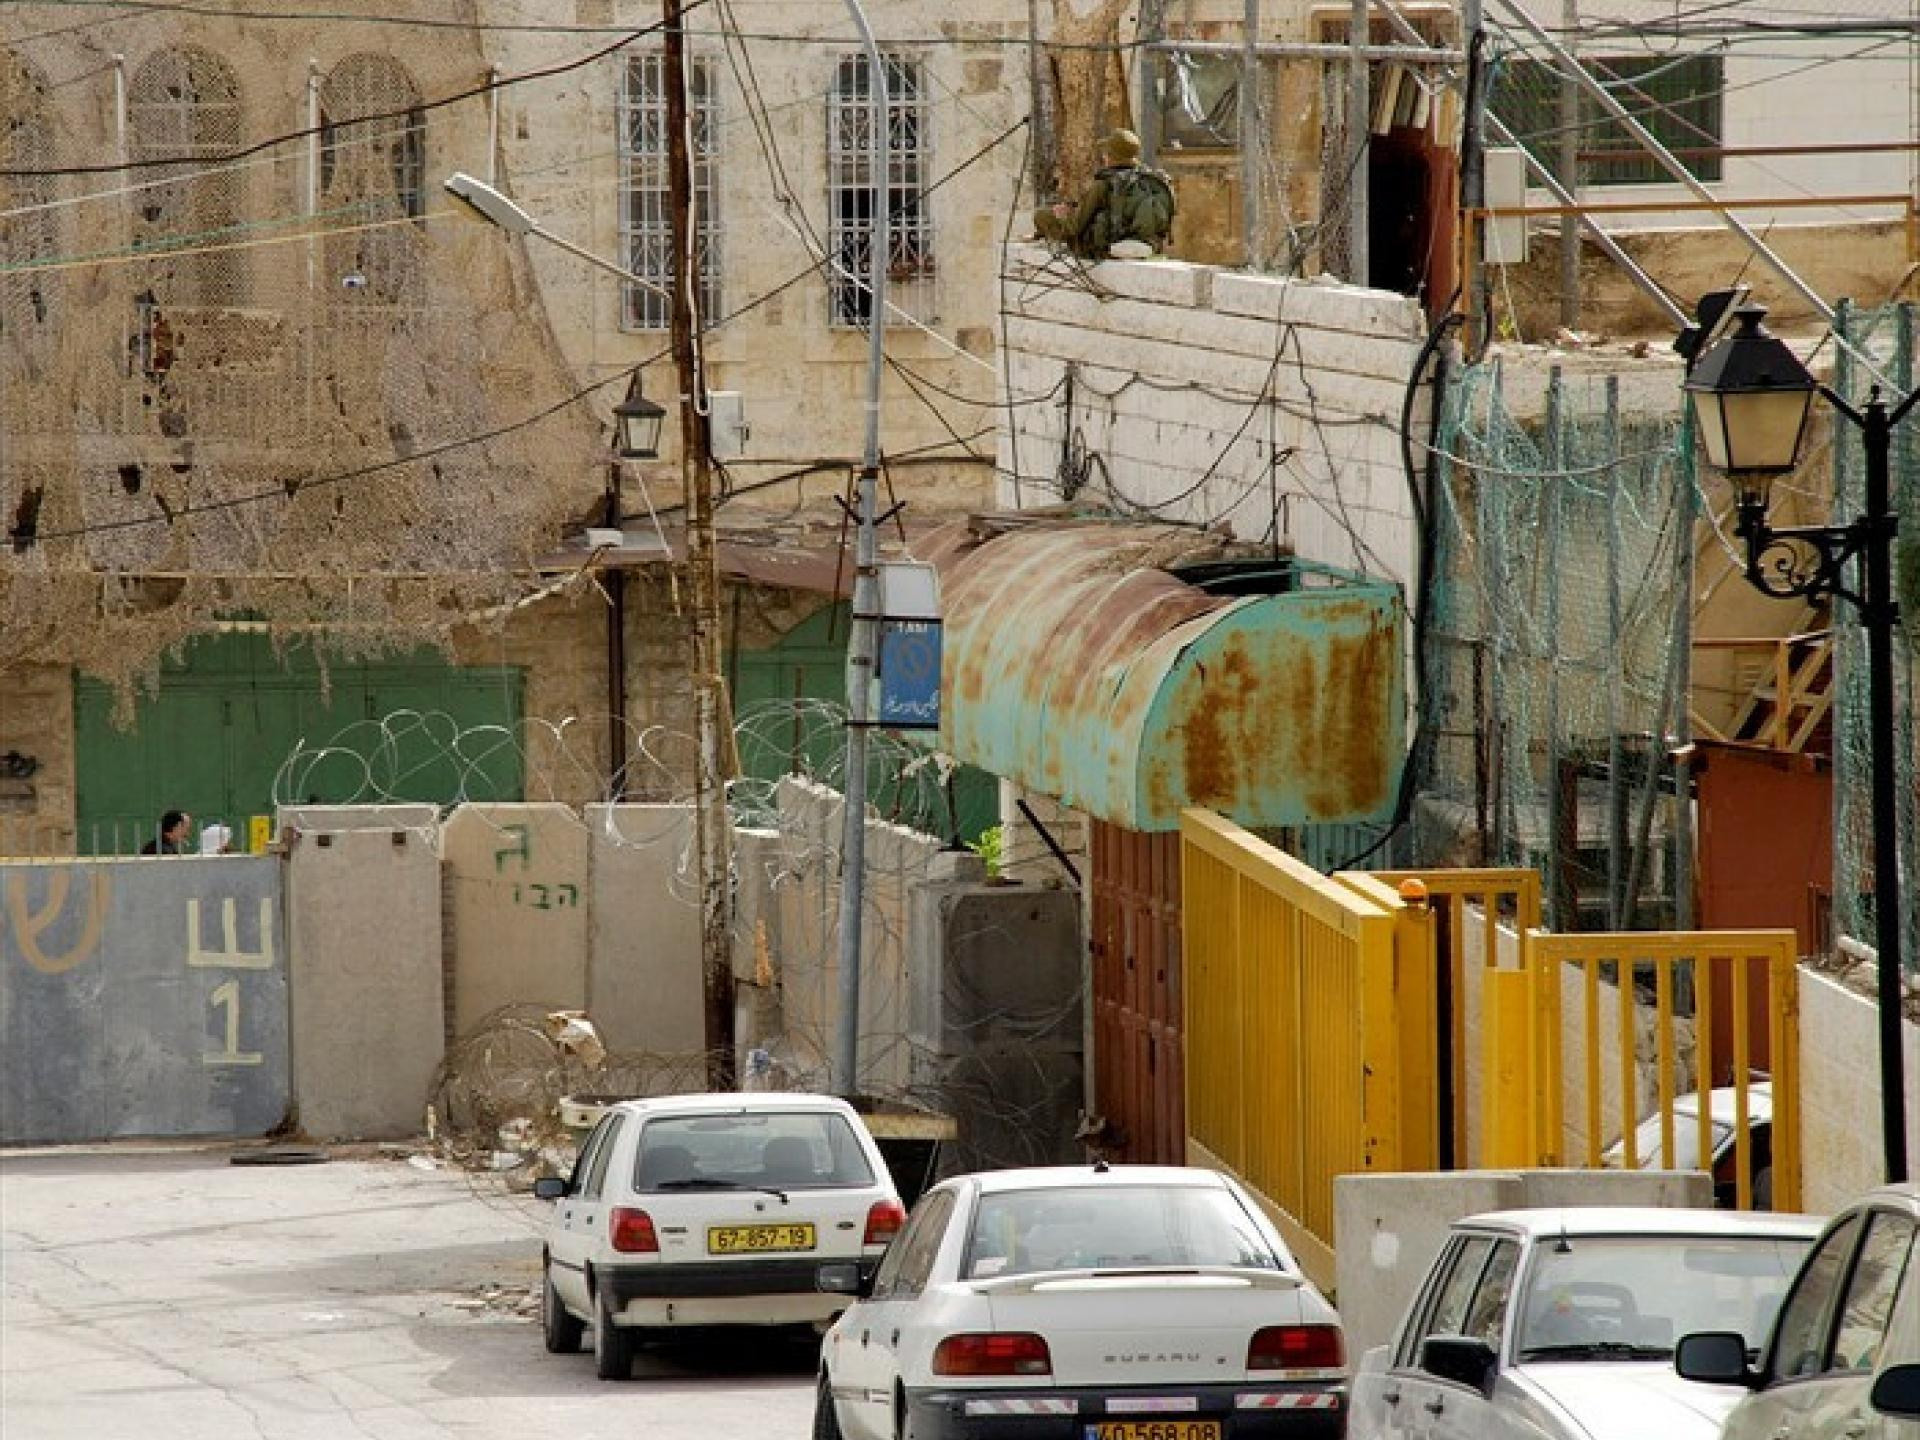 Hebron neighborhood marked by cement barriers and barbed wire